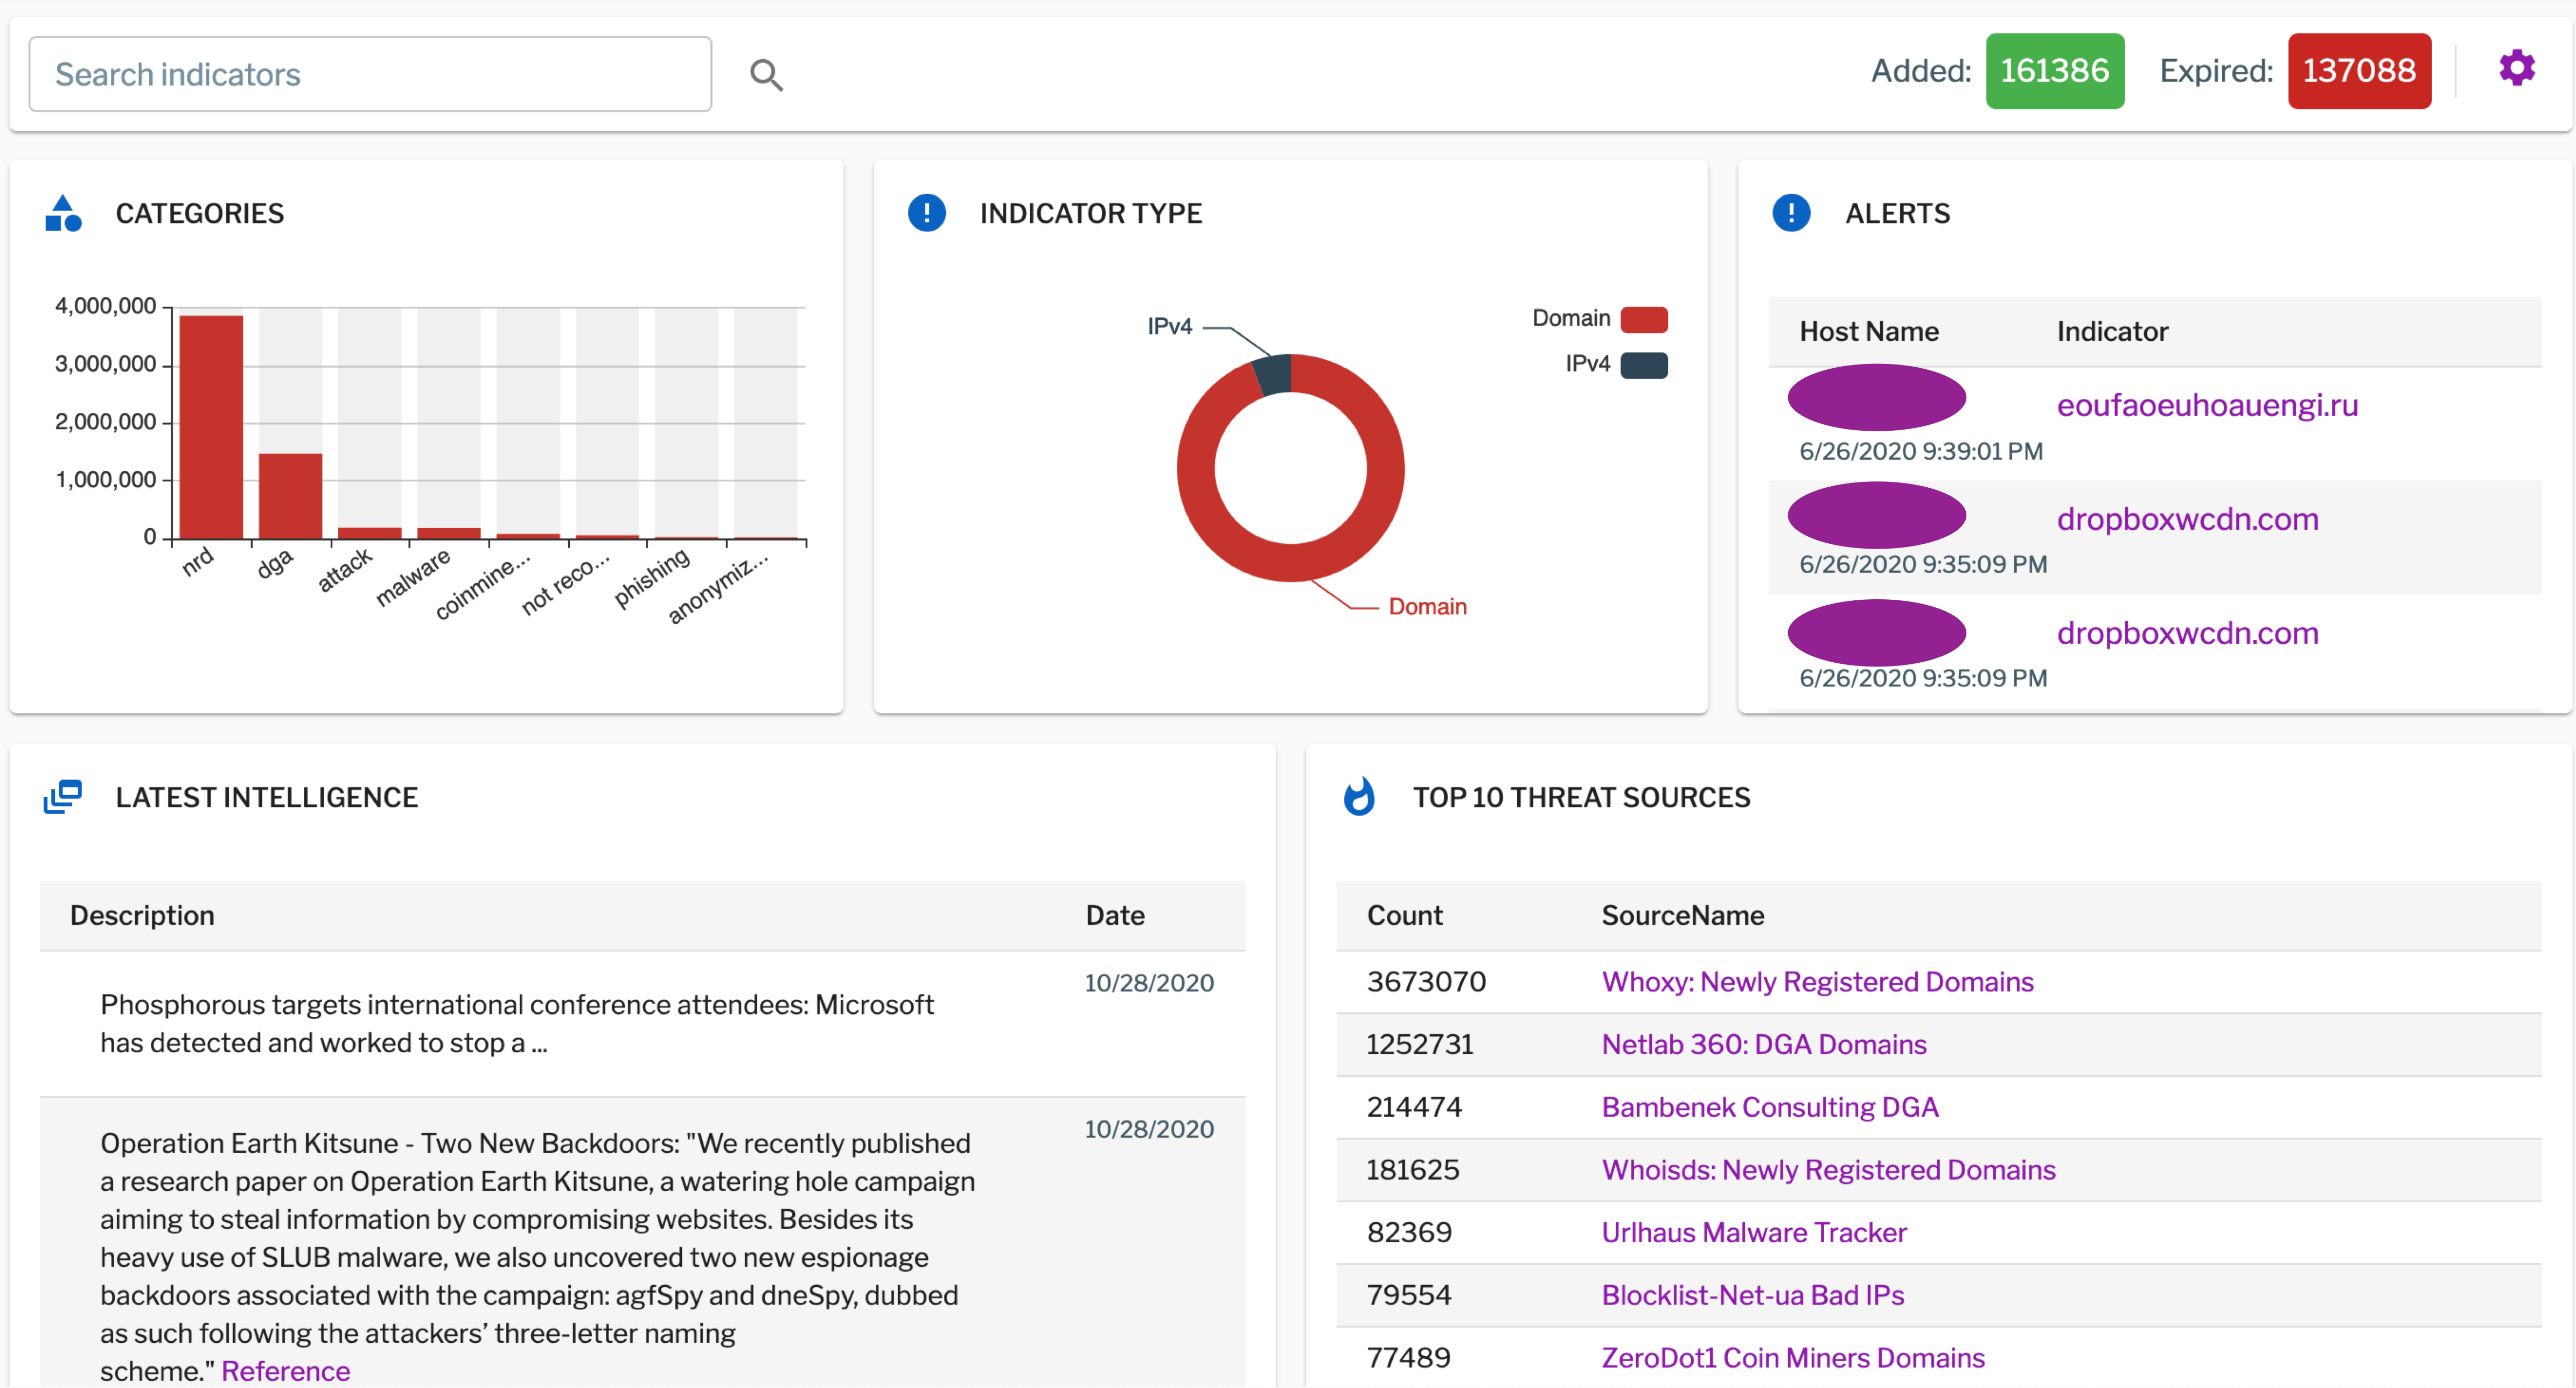 The Uptycs threat intelligence dashboard brings together threat indicators, malware news, alerts, and more.